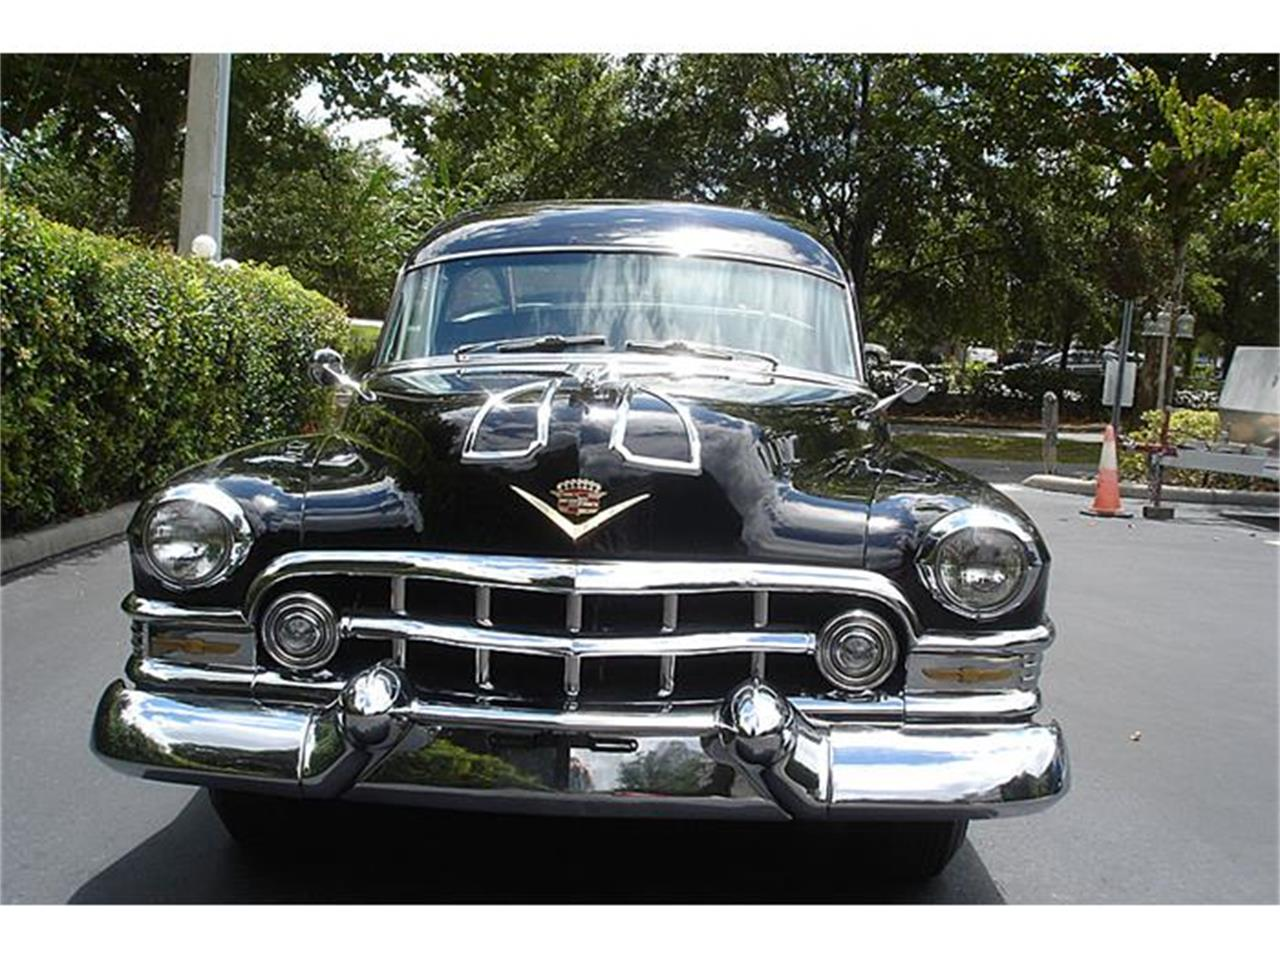 Large Picture of '52 Cadillac S&S Florentine located in Florida - $96,000.00 Offered by Classic Dreamcars, Inc. - FL81